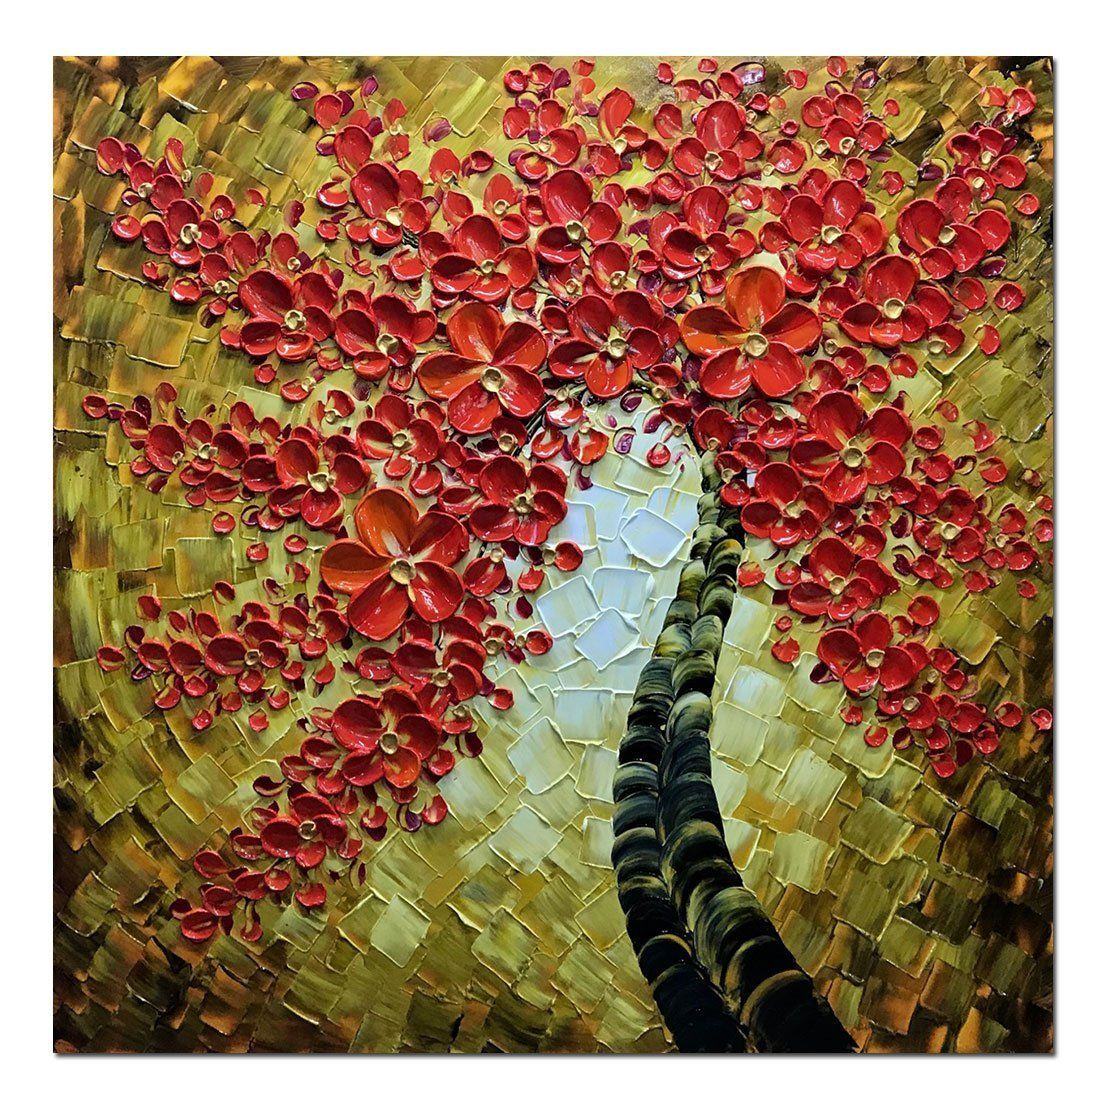 Asdam ArtRed Mapple Wall Art 3D Oil Paintings On Canvas